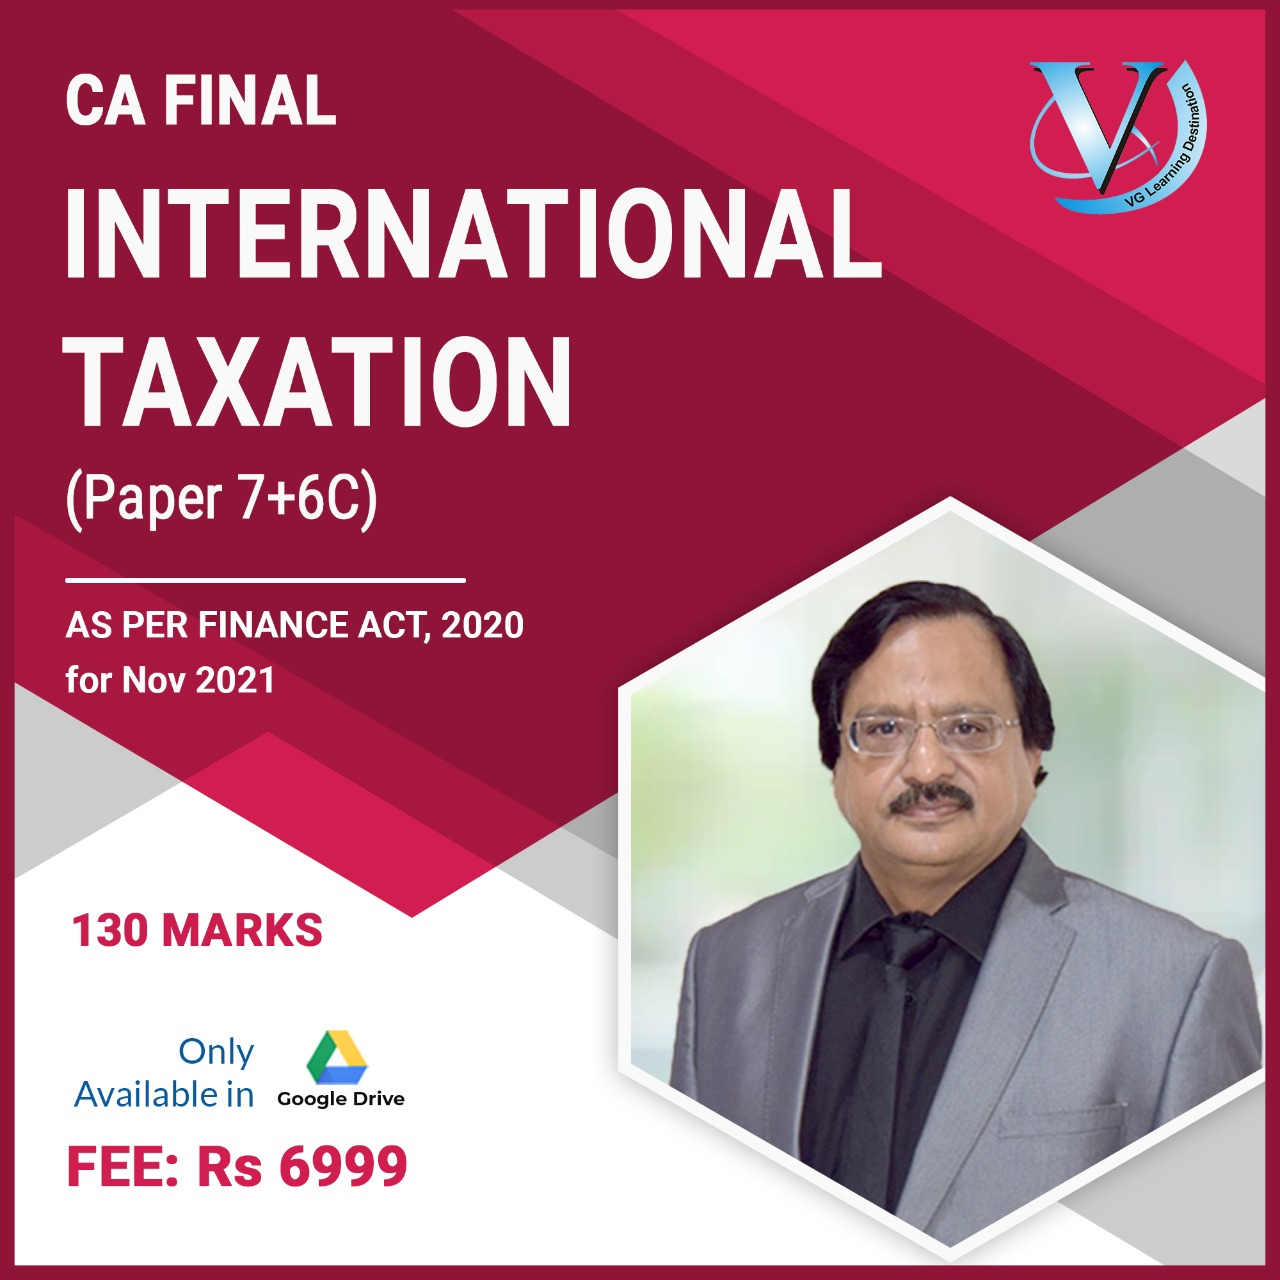 International Taxation - Pendrive (Paper 7+6C)